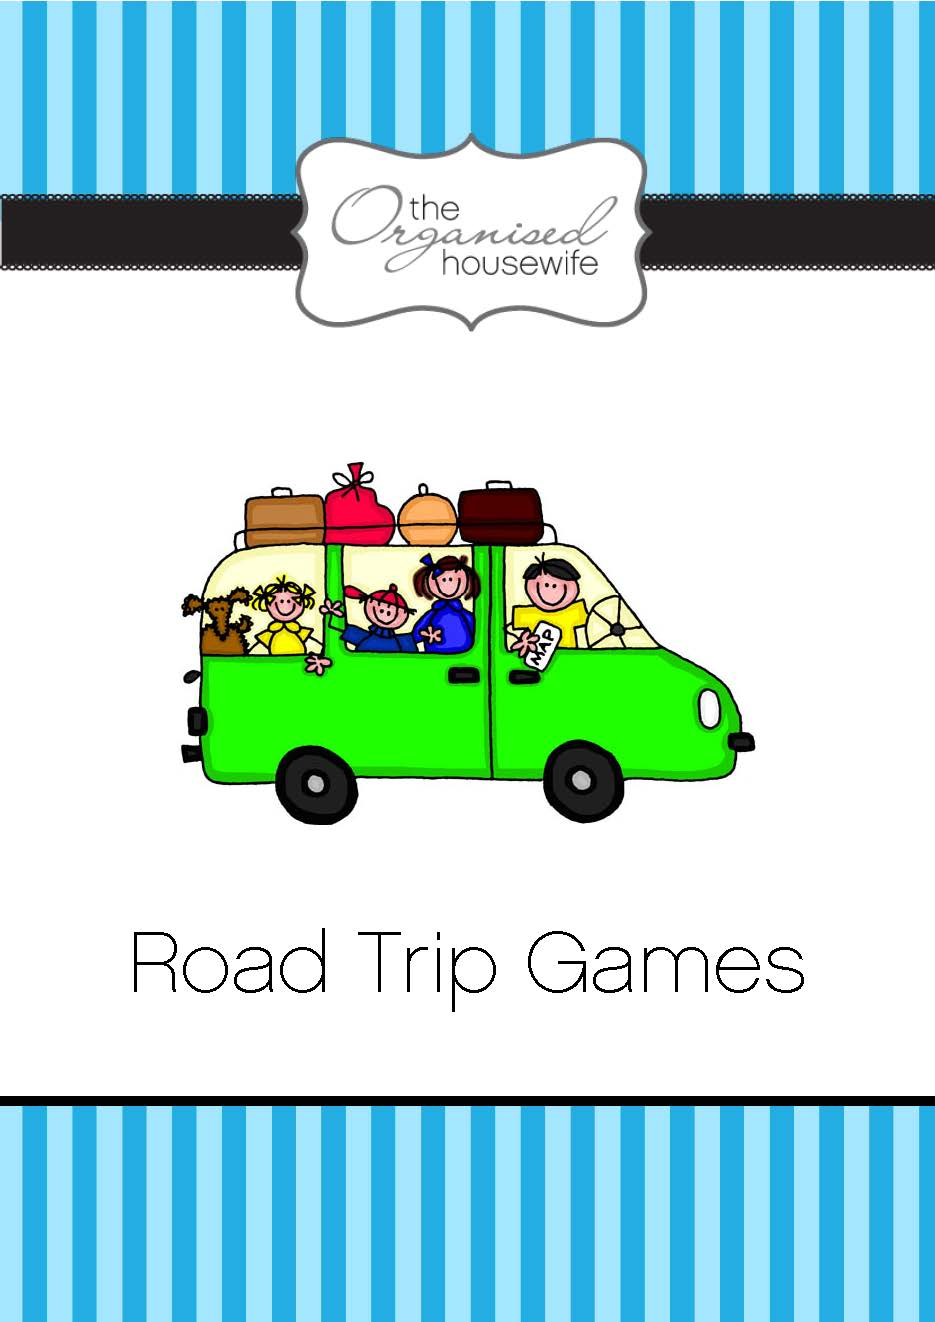 Aussie Road Trip Games The Organised Housewife